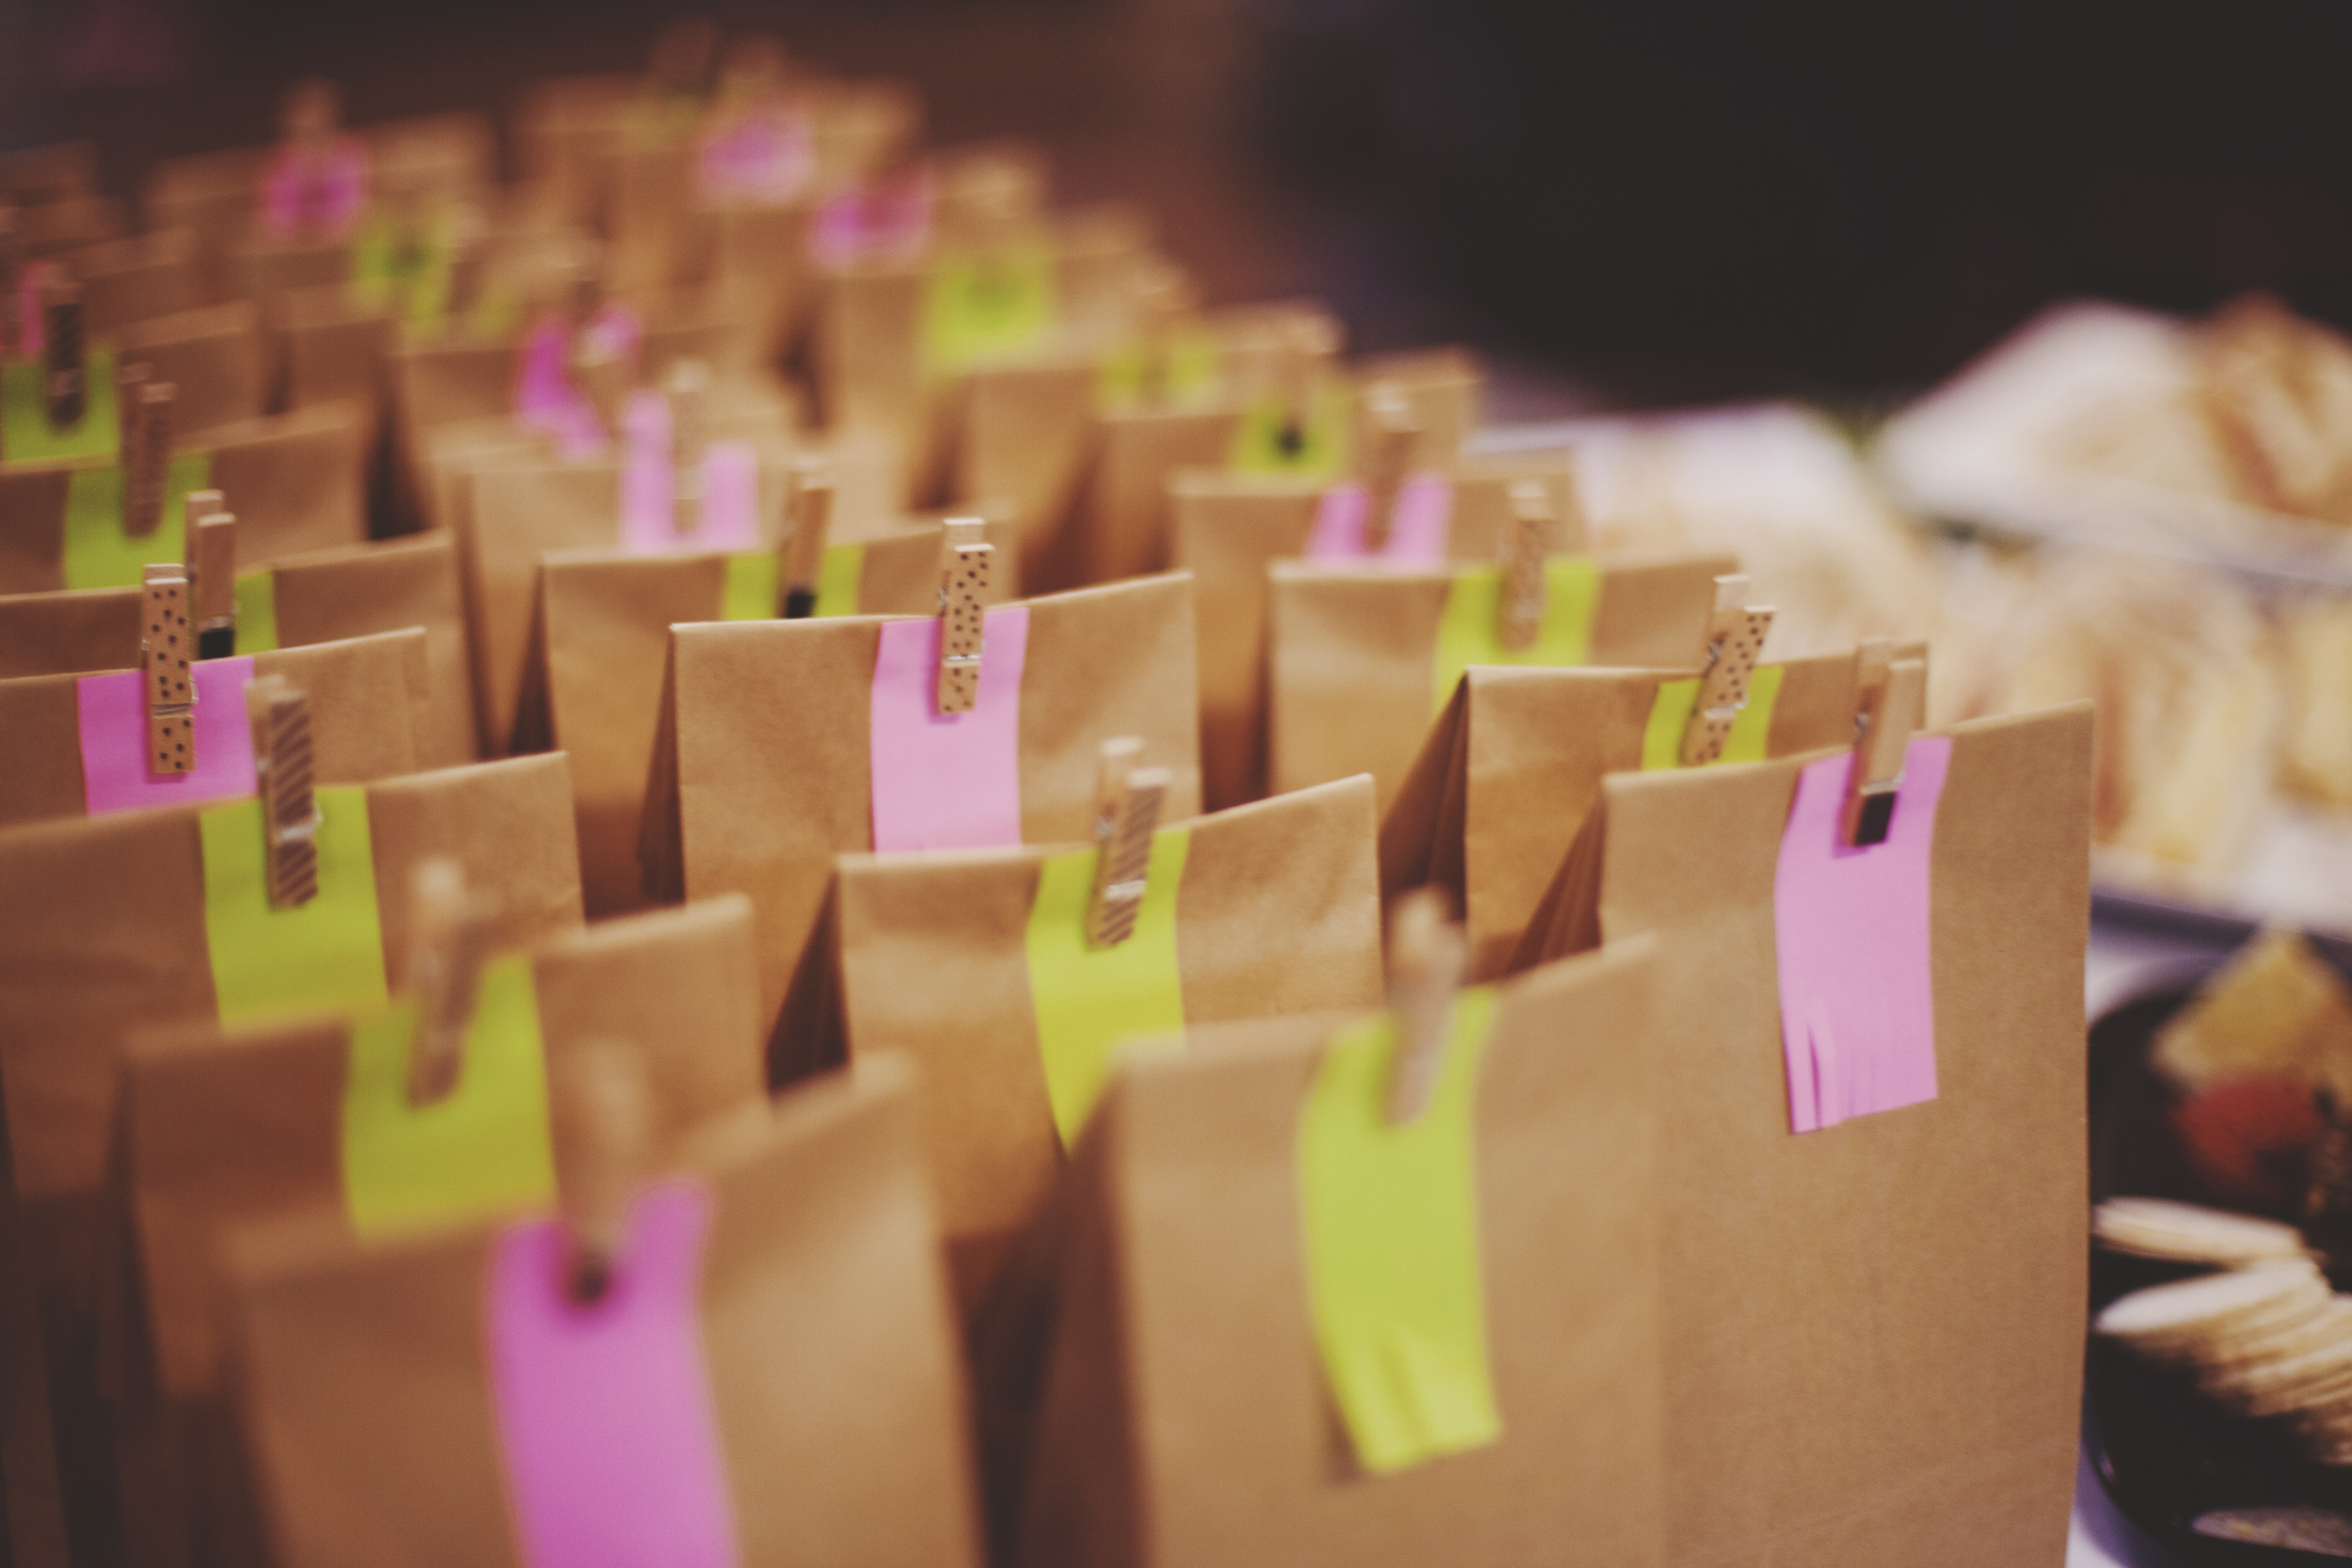 brown lolly bags with pink and green tags